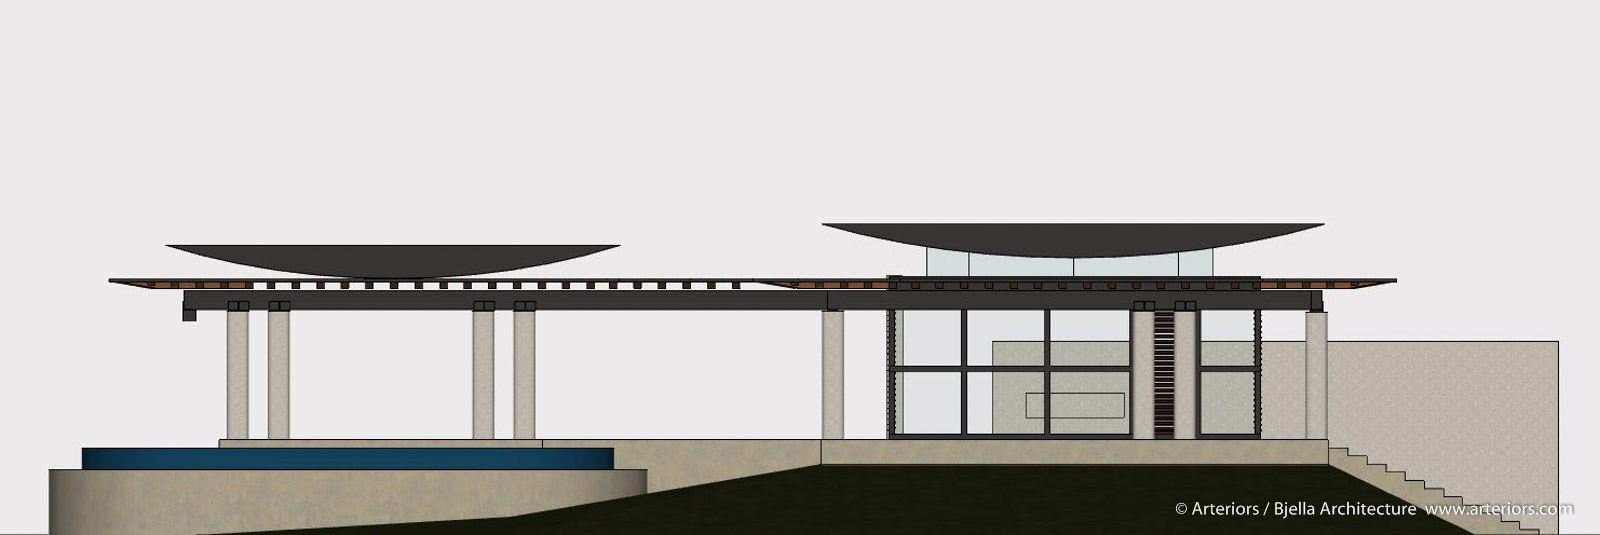 Modern Glass Island Home Elevation by Arteriors Architects